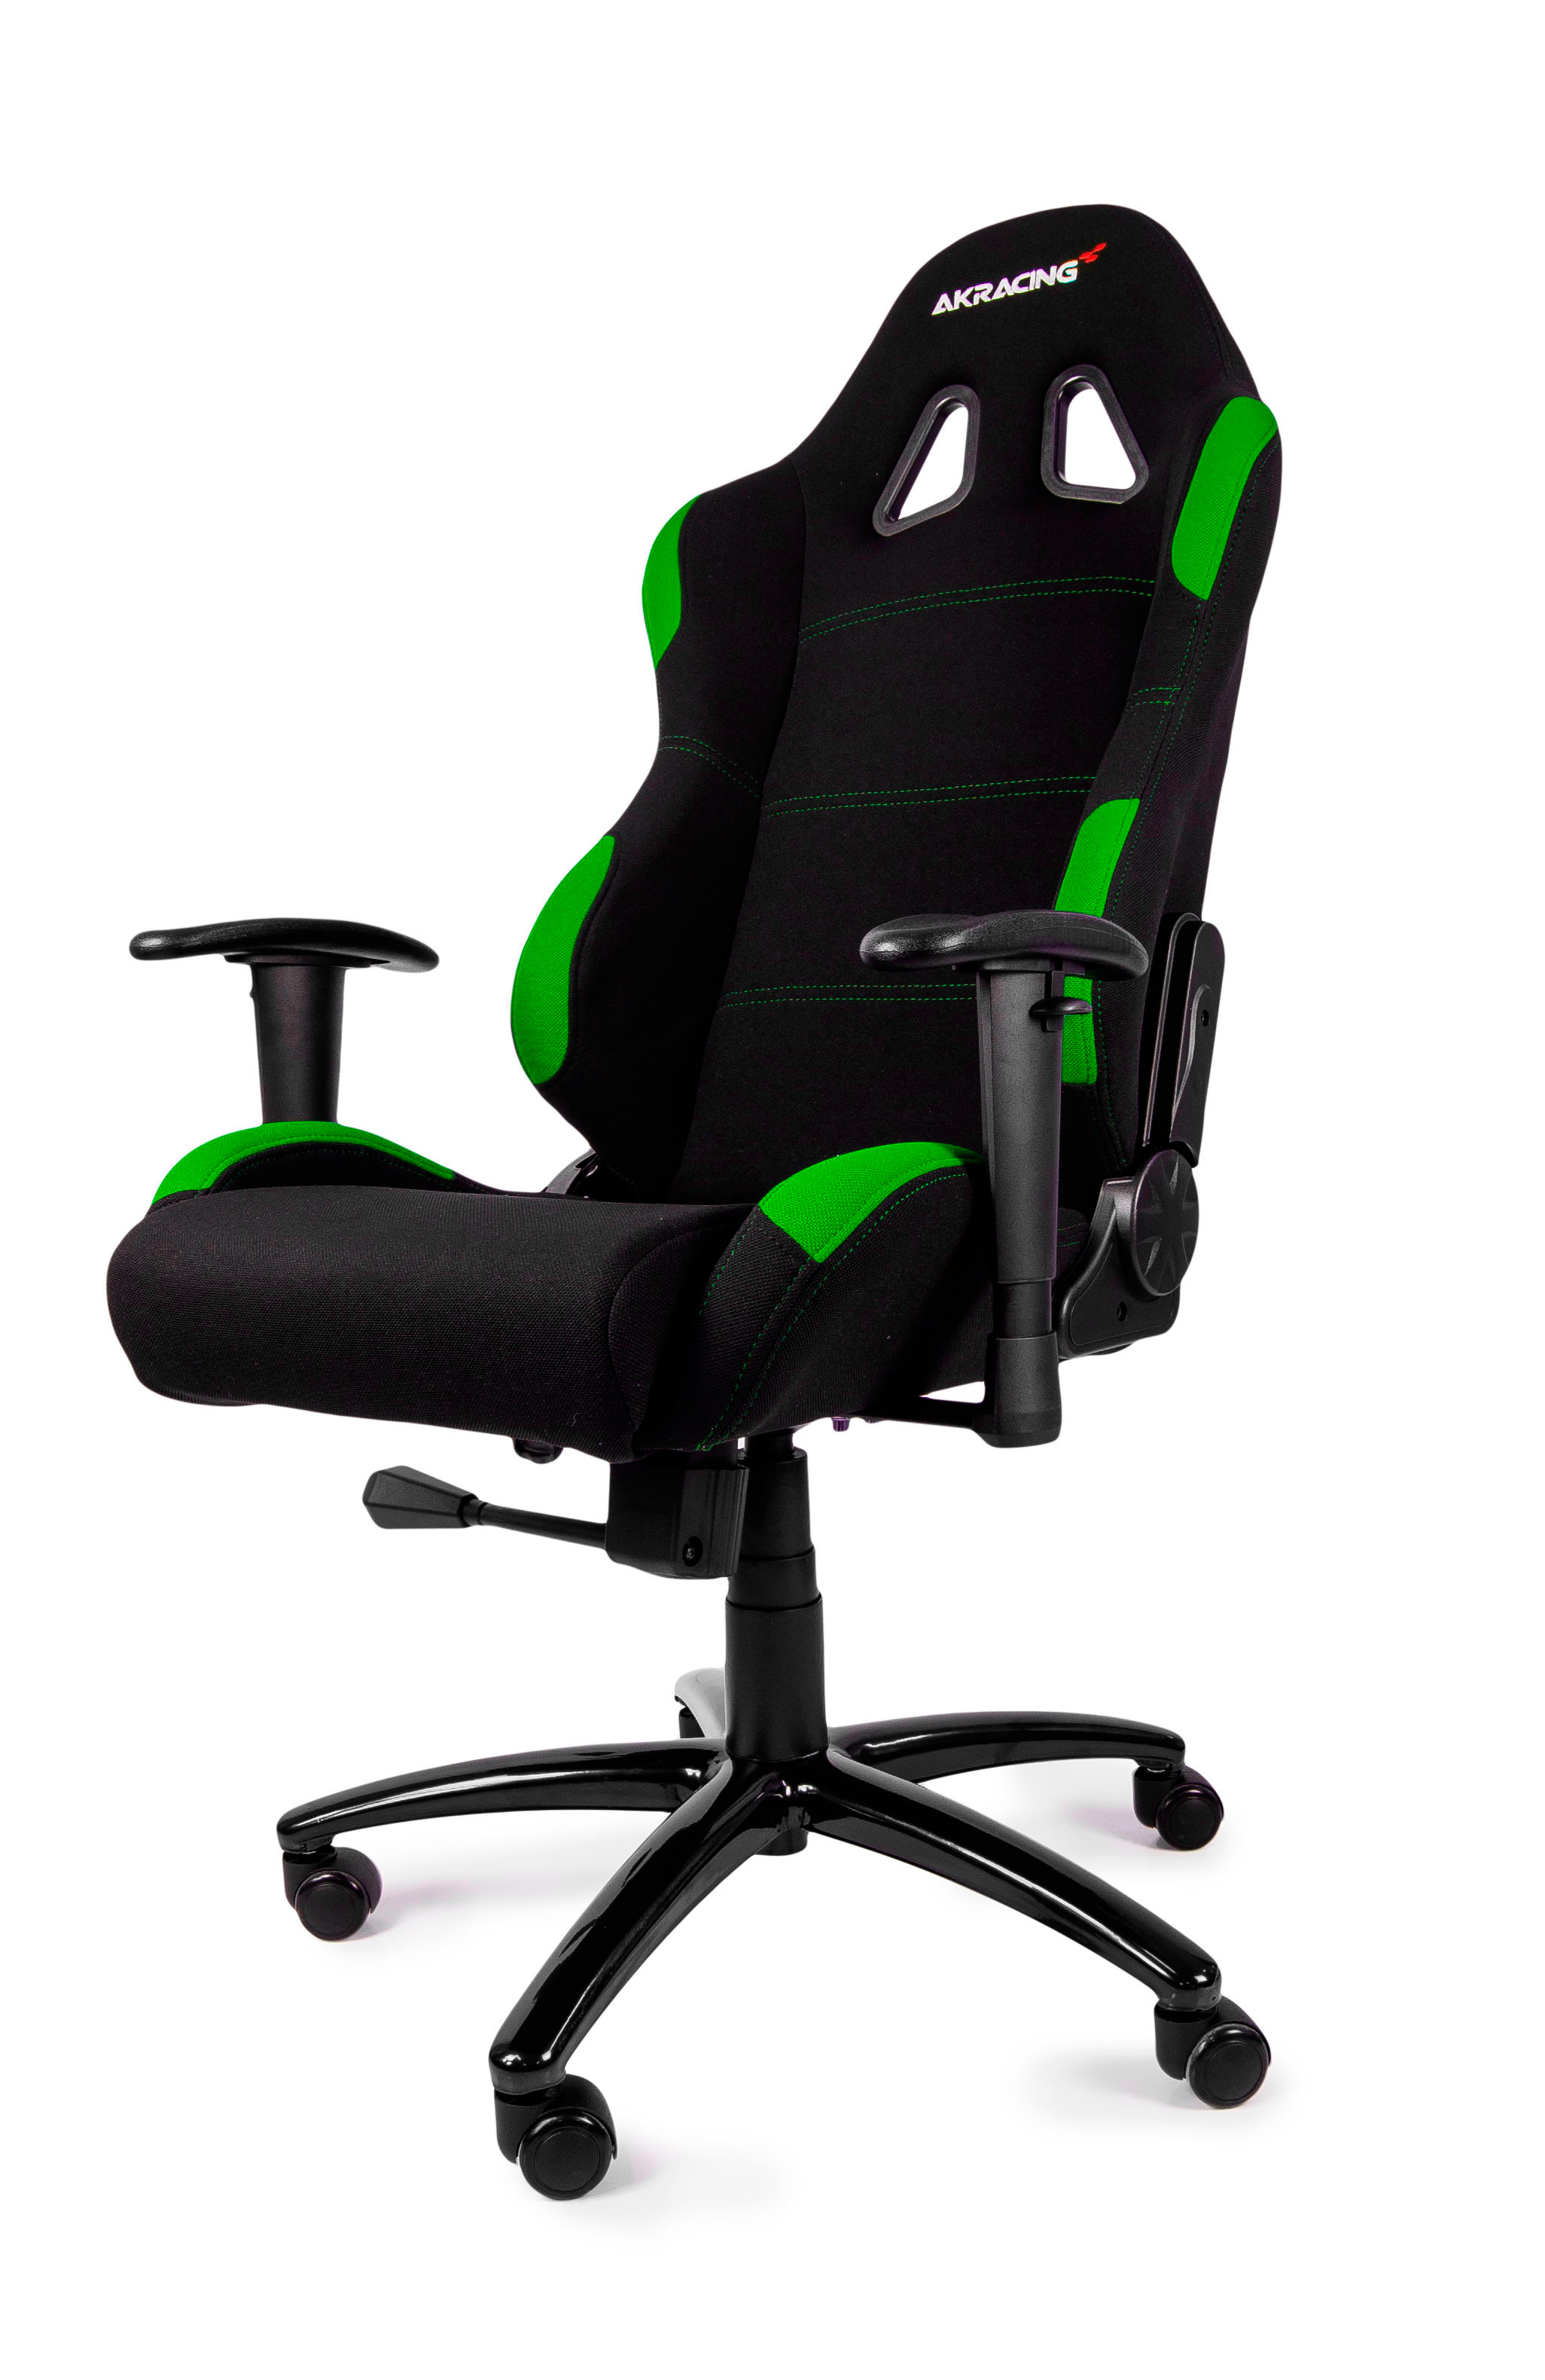 Pleasing Ak Racing Gaming Chair Black Green Aria Pc Machost Co Dining Chair Design Ideas Machostcouk